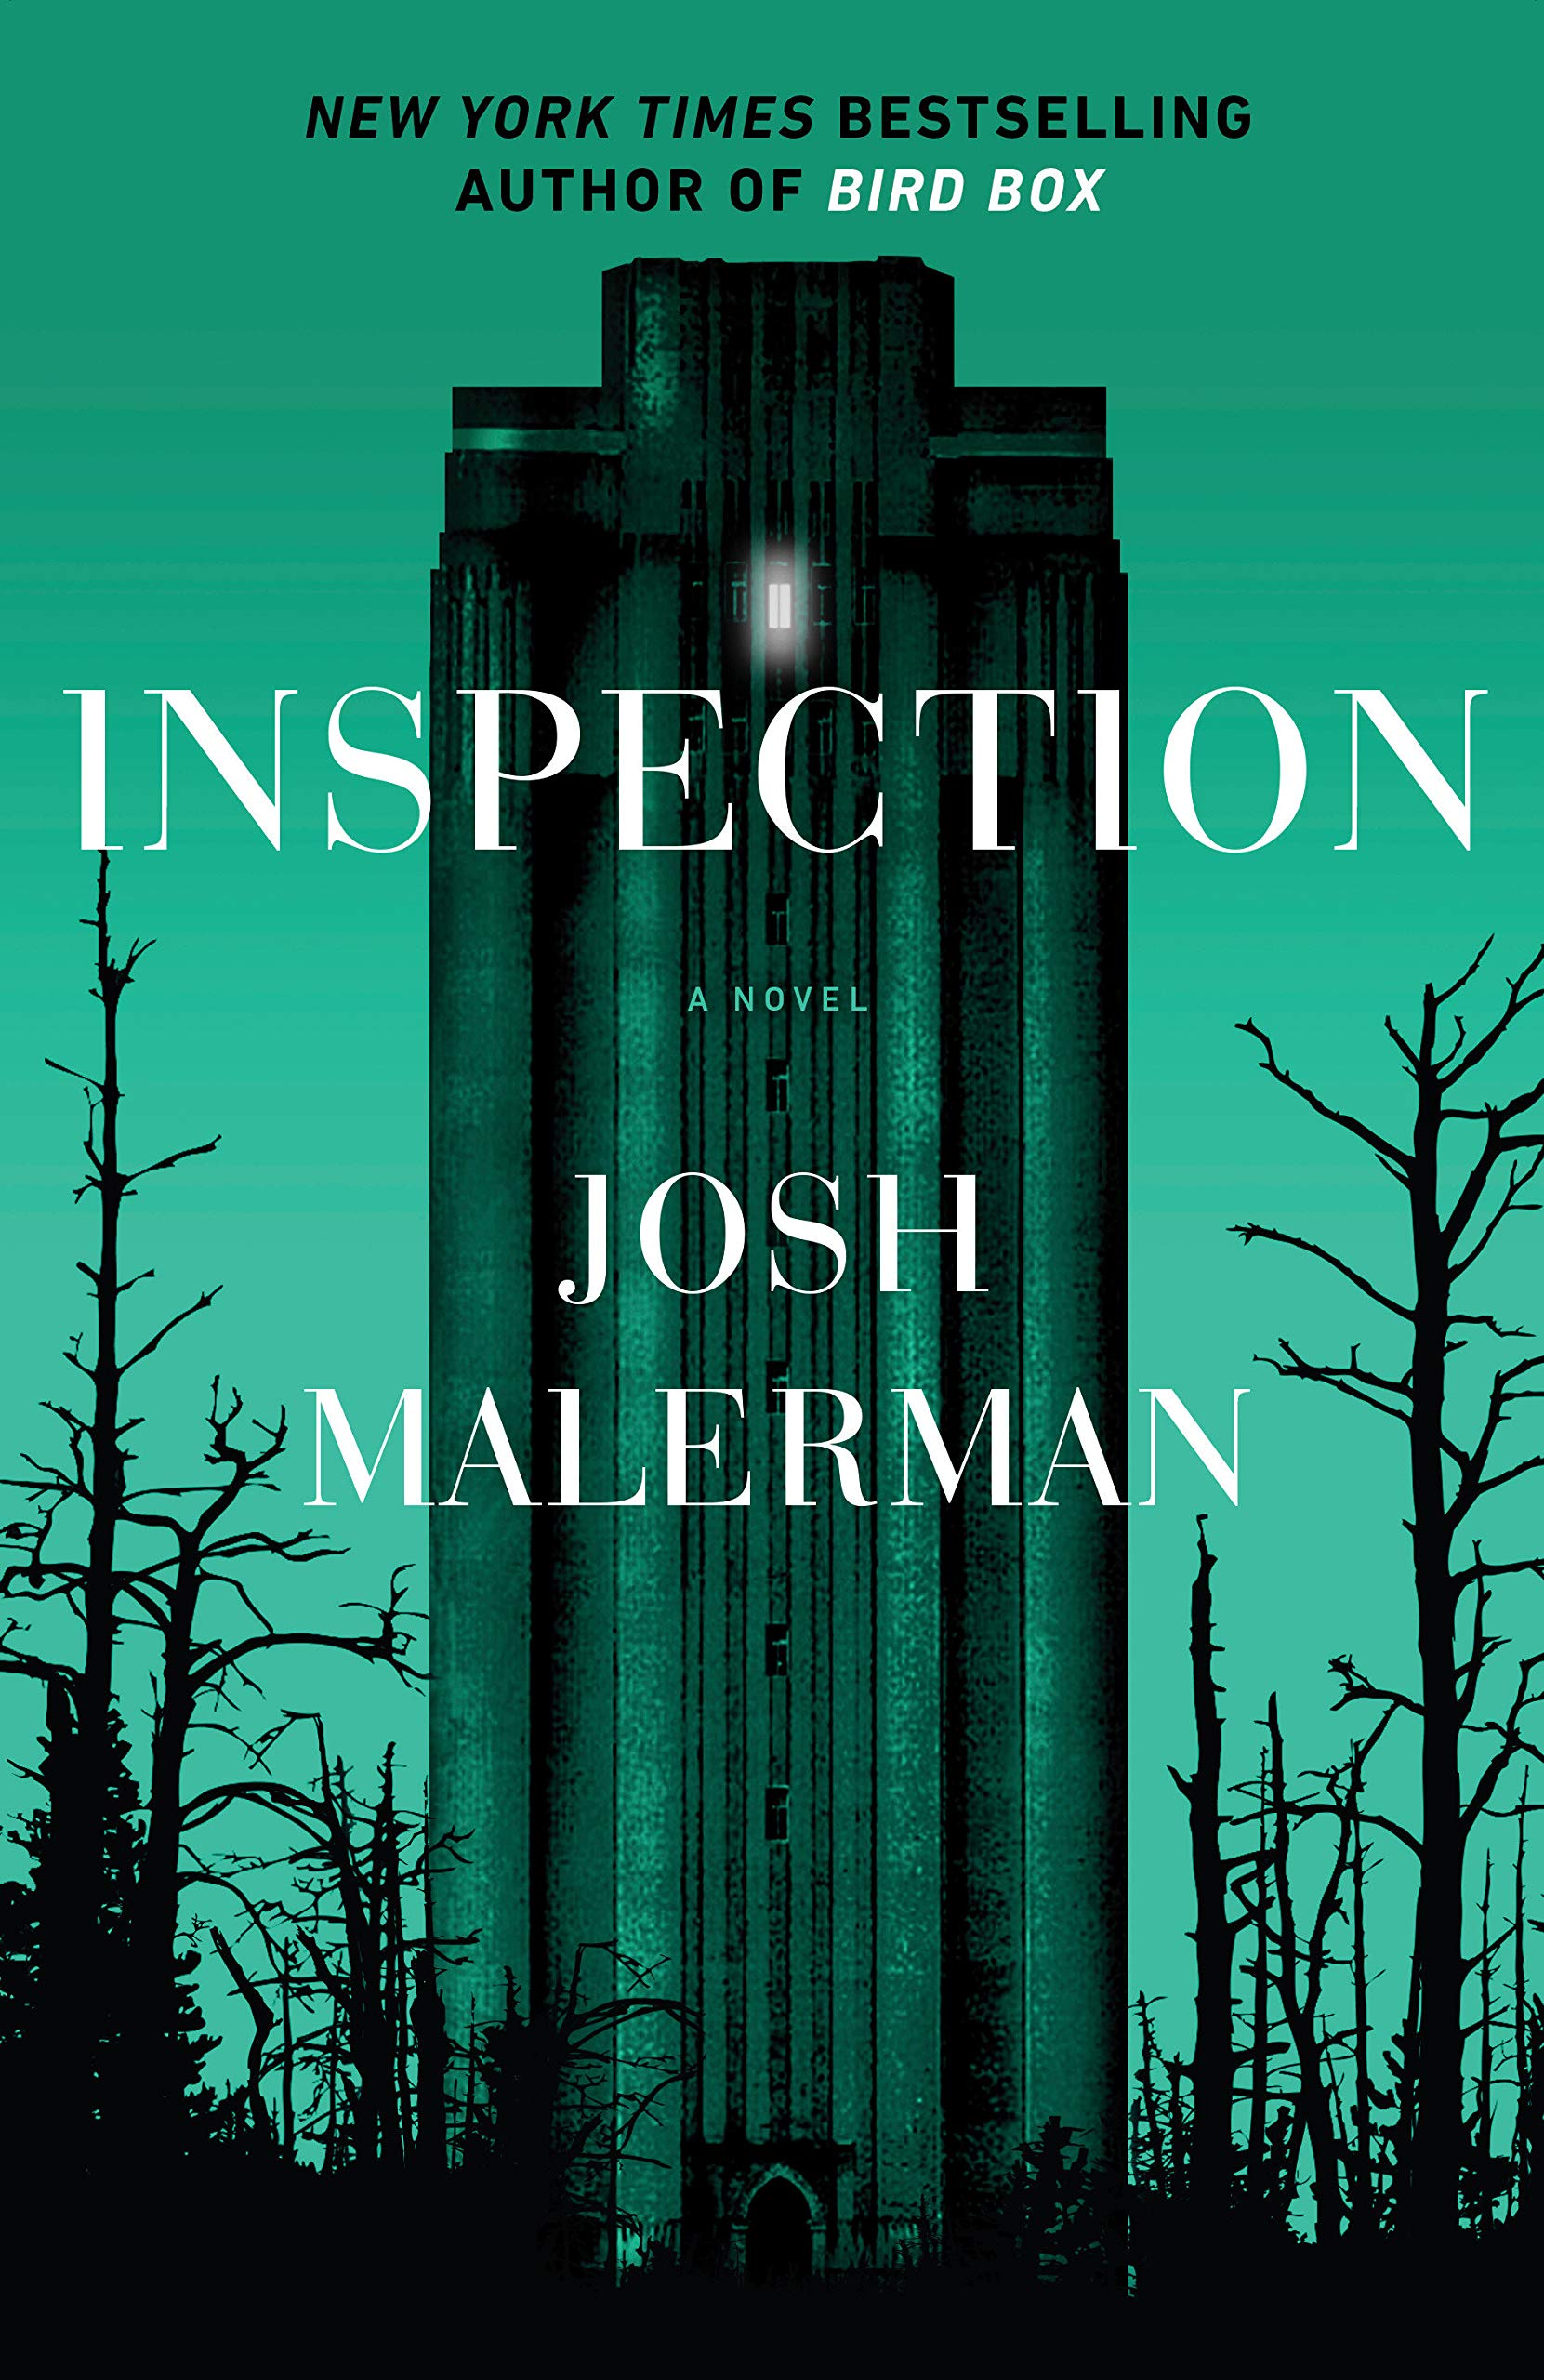 Inspection by Josh Malerman - Image from Amazon.com